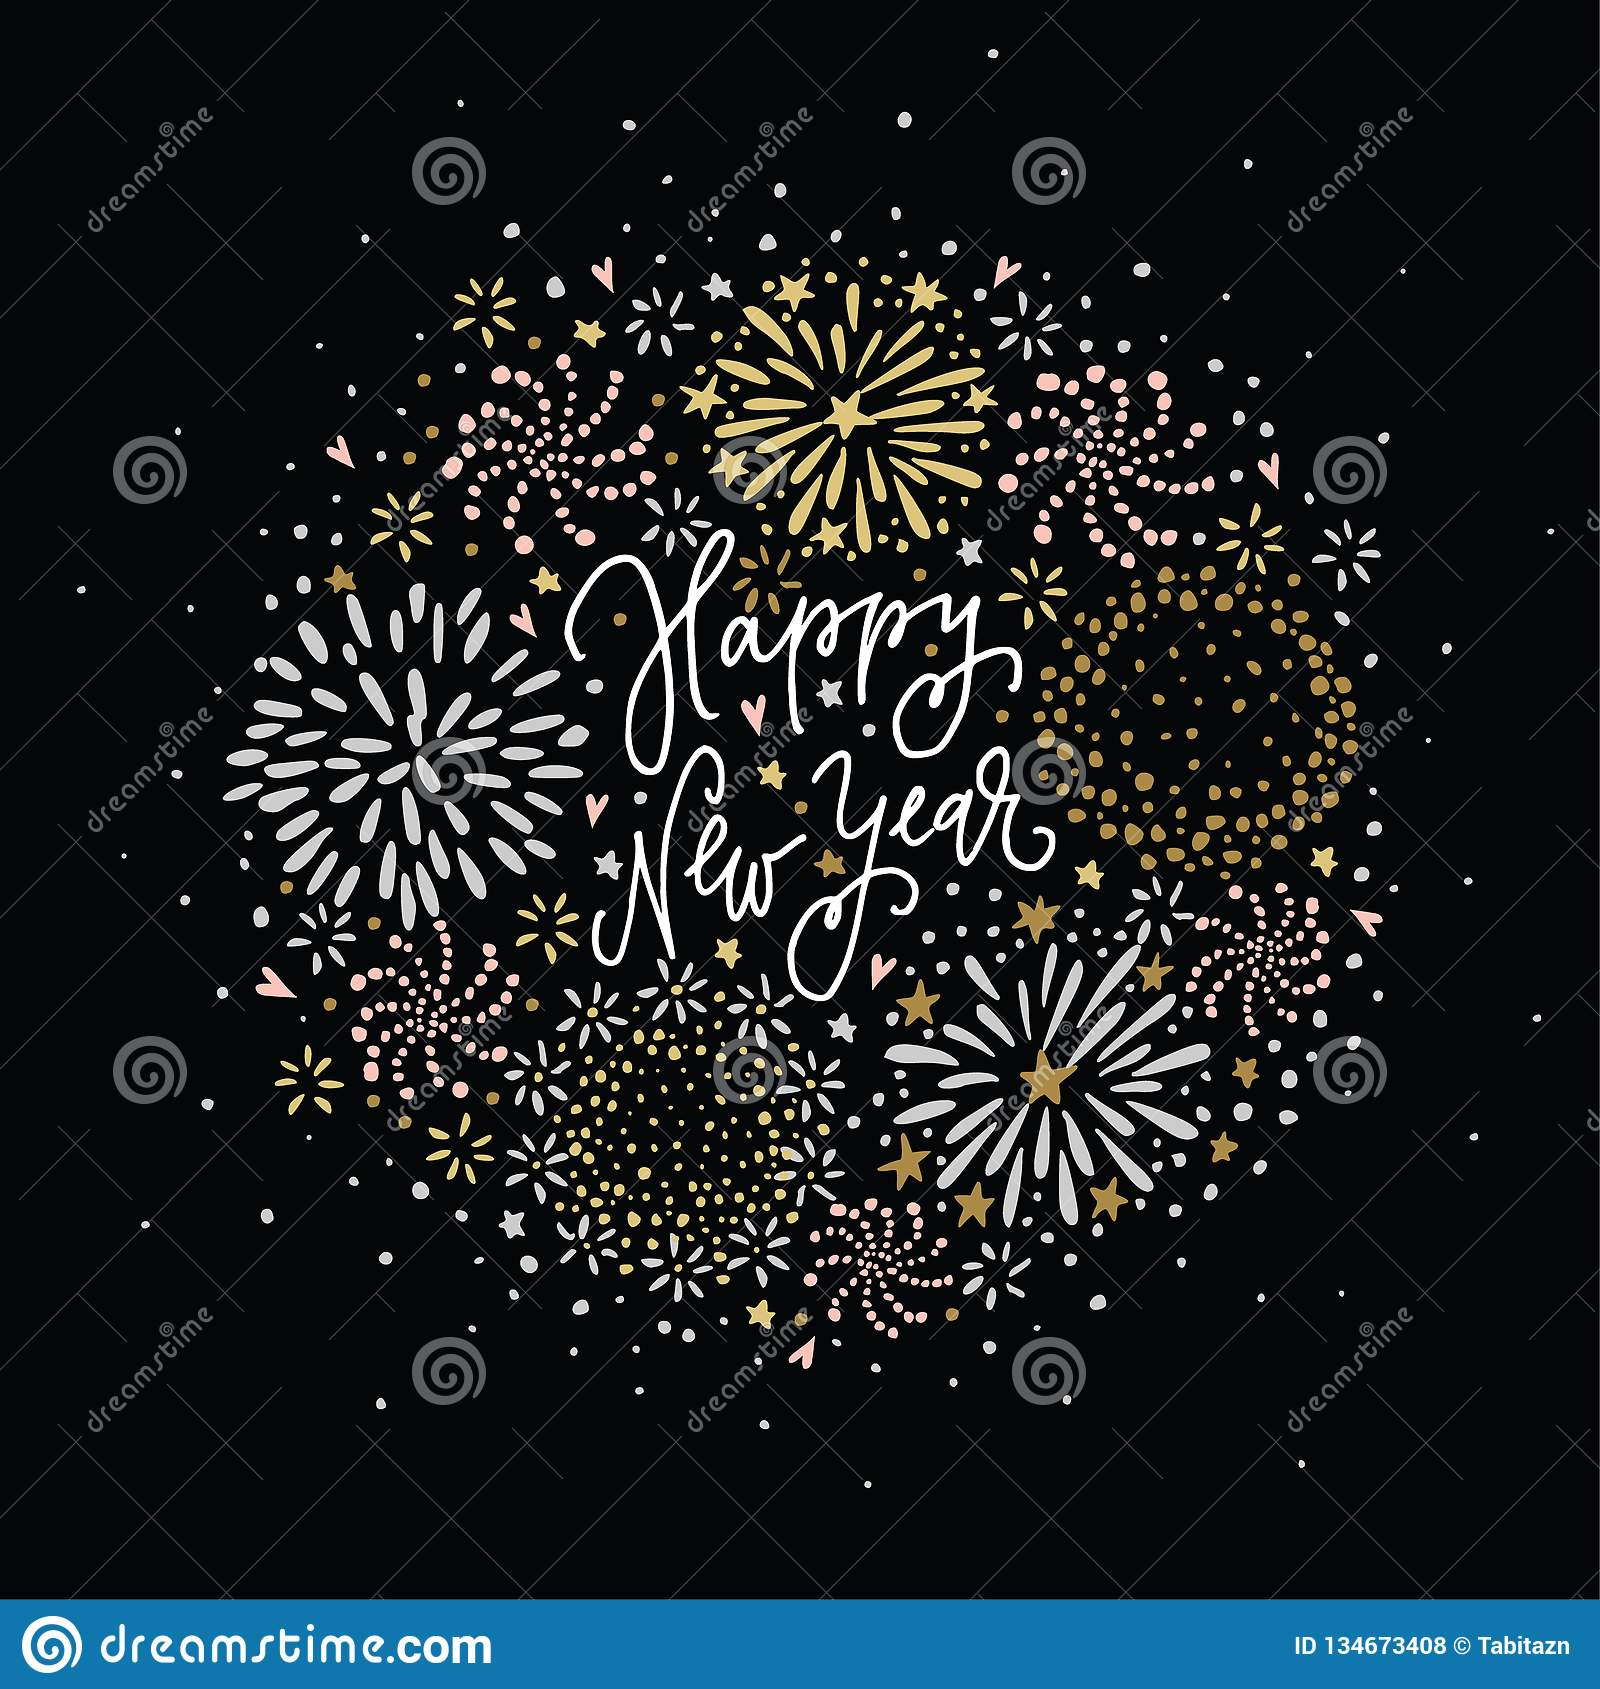 Happy New Year greeting card, invitation. Set of hand drawn silver and golden fireworks, stars and sparks with white